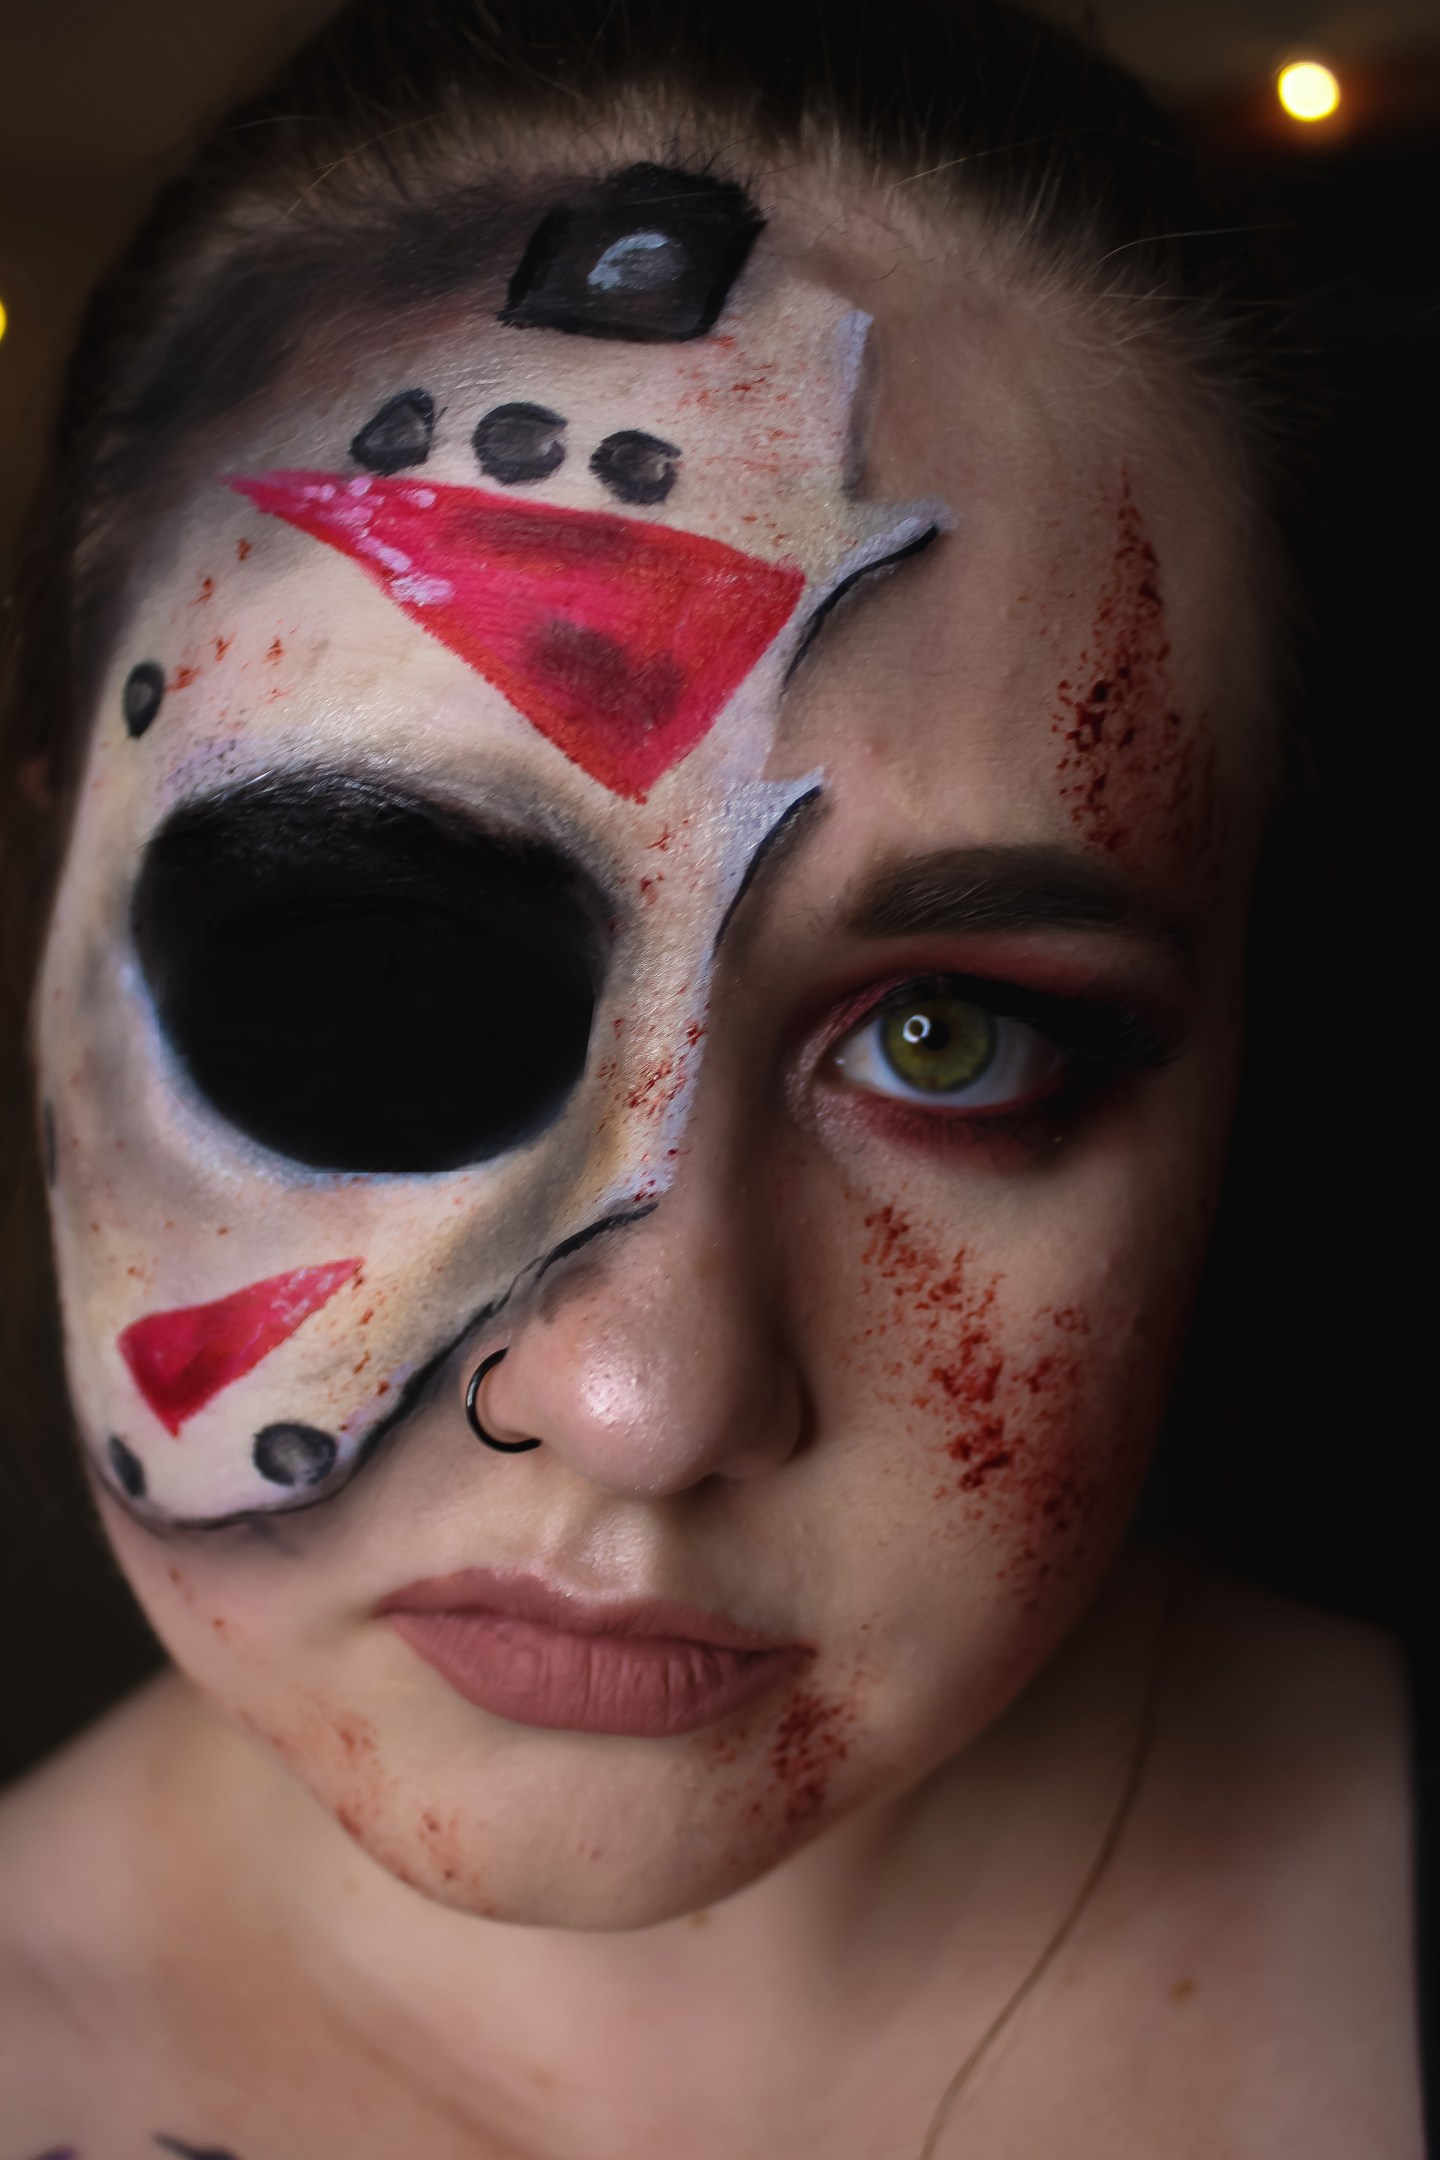 You're Doomed! Jason Voorhees from Friday the 13th Makeup Look 2